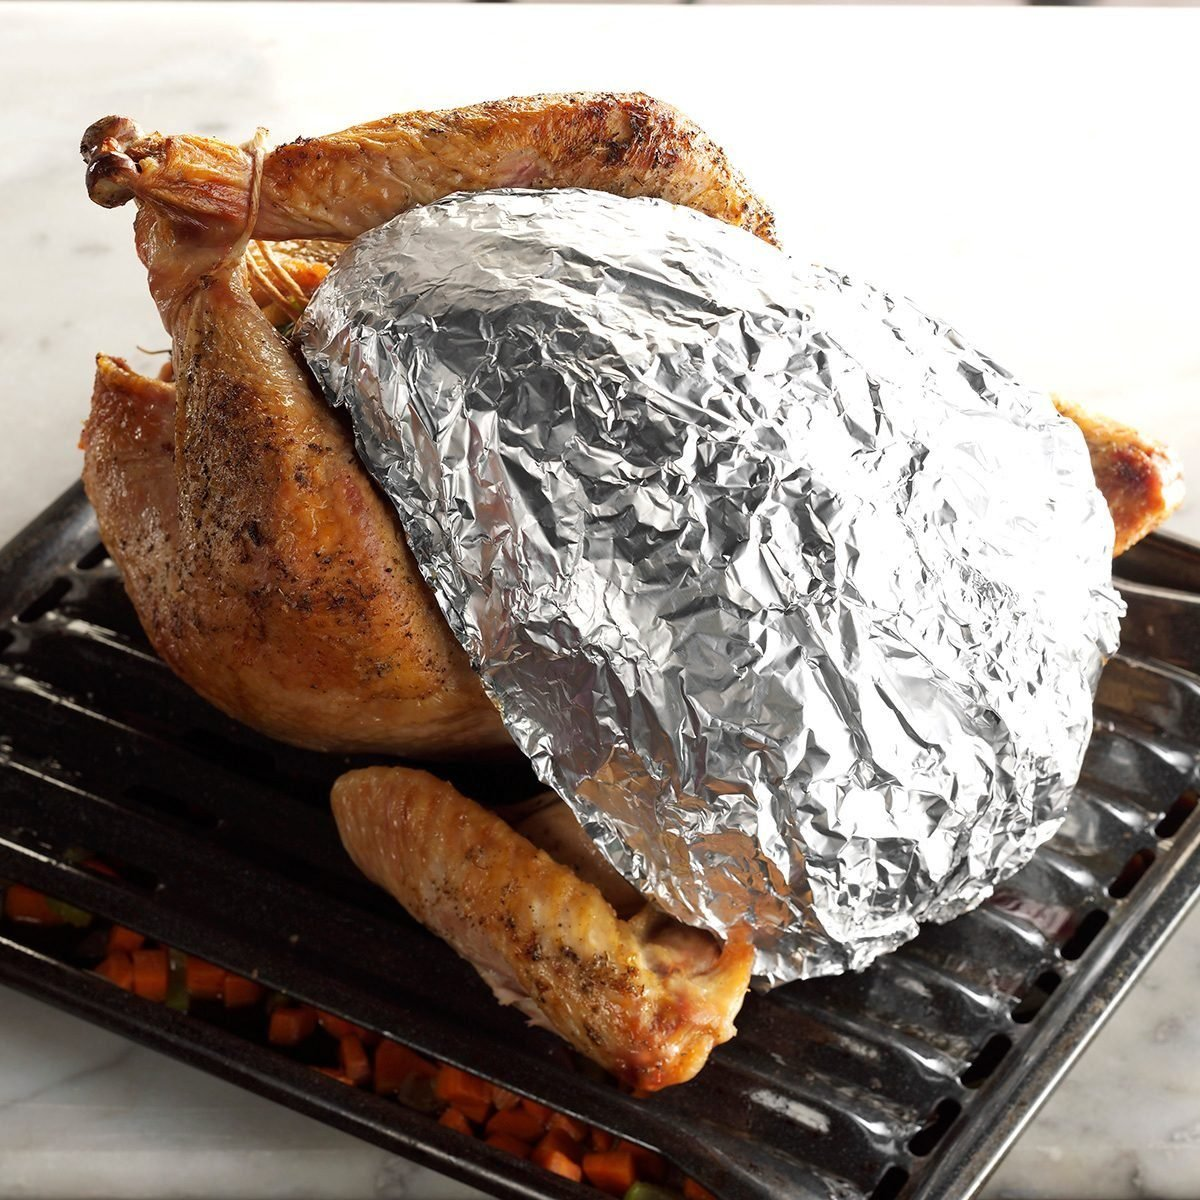 Foil cover on roasted Thanksgiving turkey